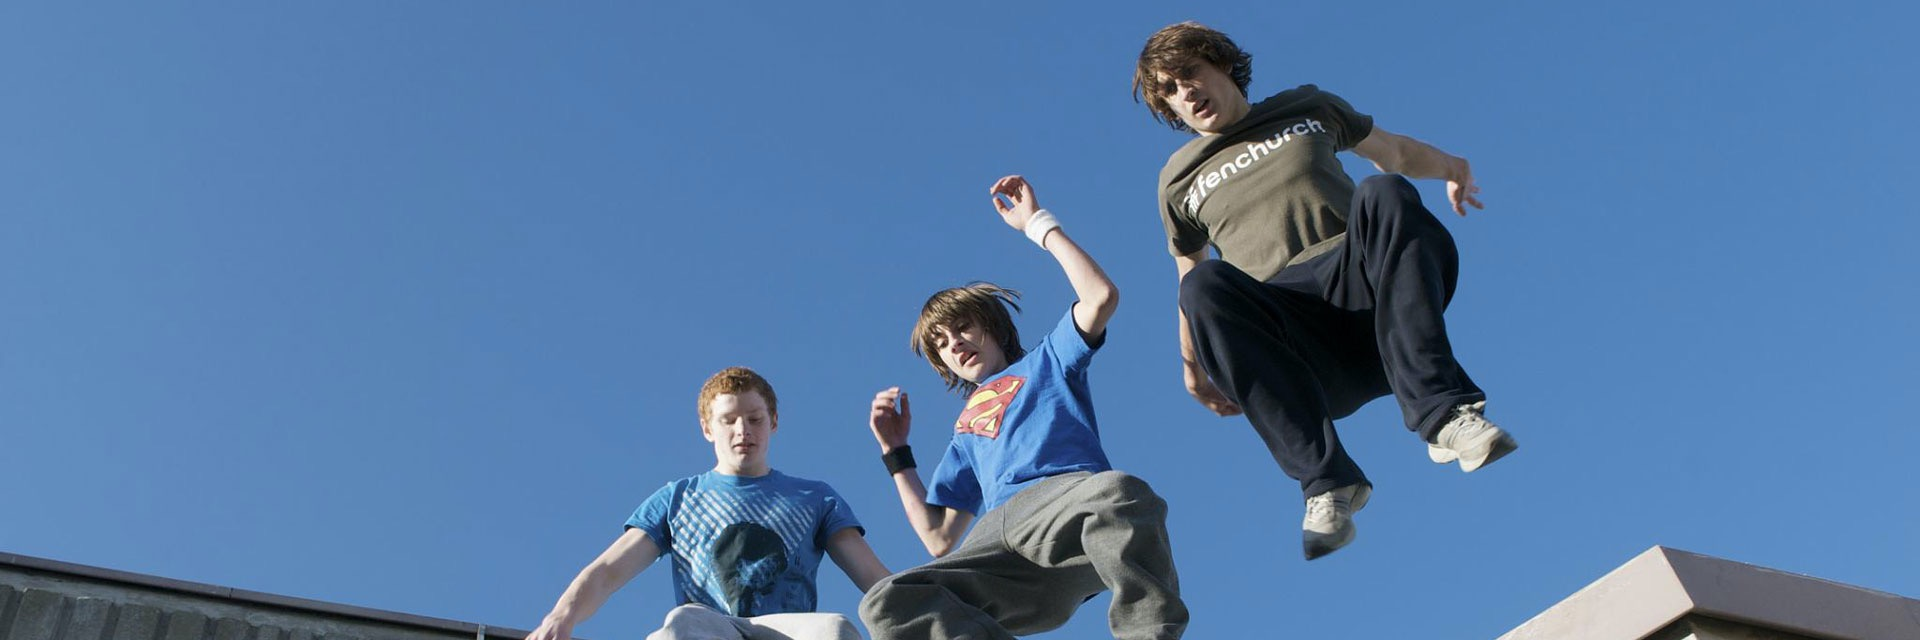 Parkour_Foundation_Winter_3091213822small1920x5001.jpg